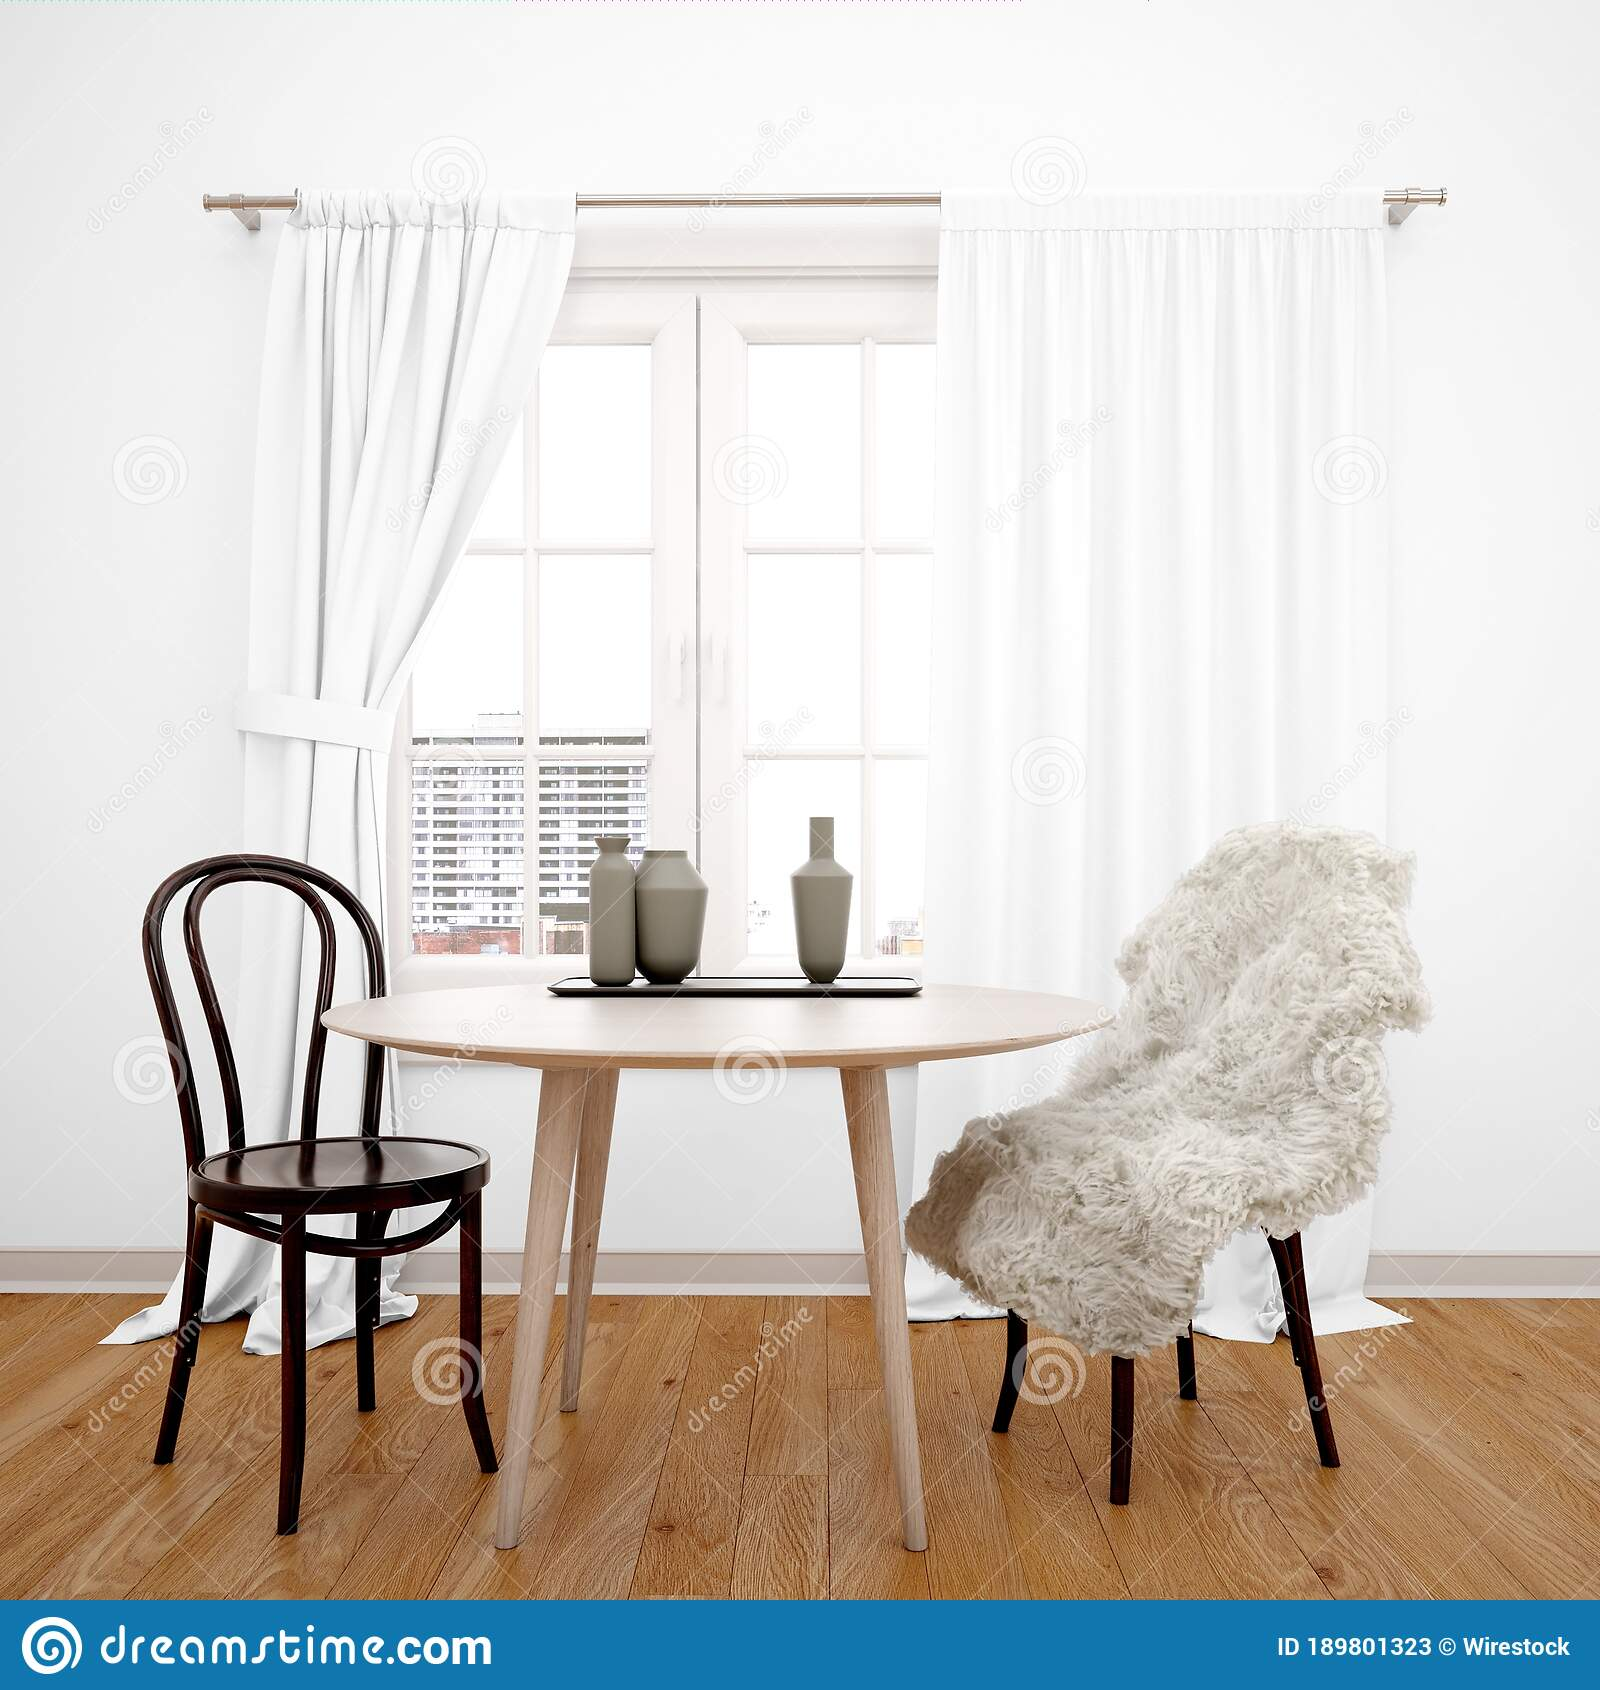 Dining Room Table In Front Of The Window With White Curtains Stock Image Image Of House Empty 189801323